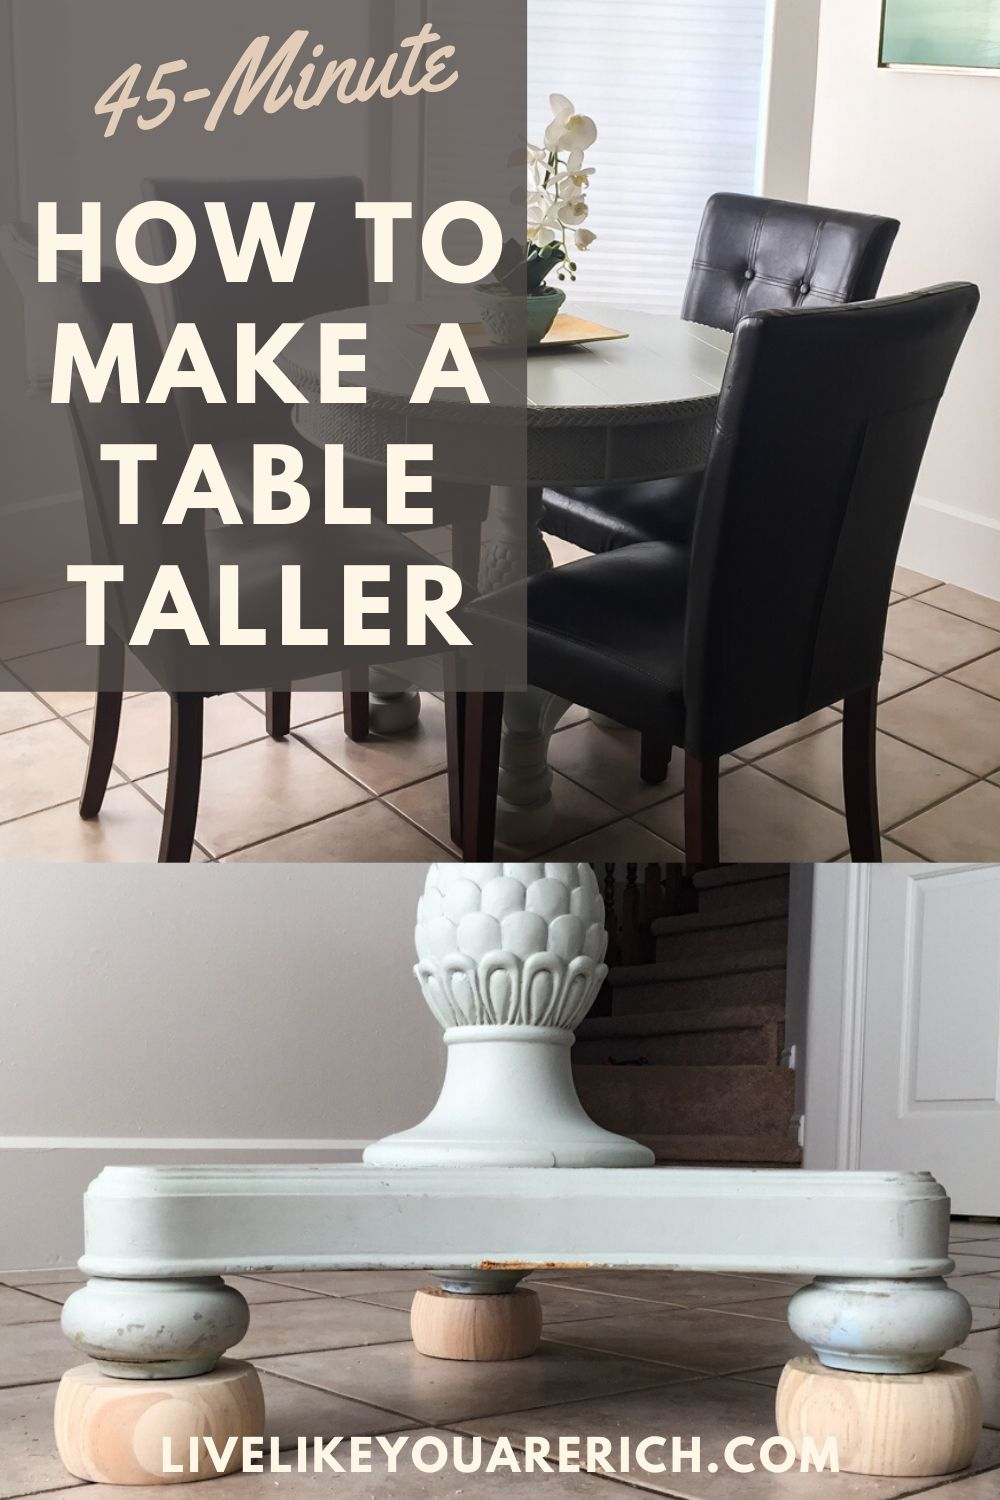 I have a small table that I bought 5 years ago. I decided to make it taller. My little table measures just over 30 inches tall and fits my diningchairs perfectly.It has been very functional and was inexpensive, easy, and quick. I hope this is helpful if you need to make a table taller as well!